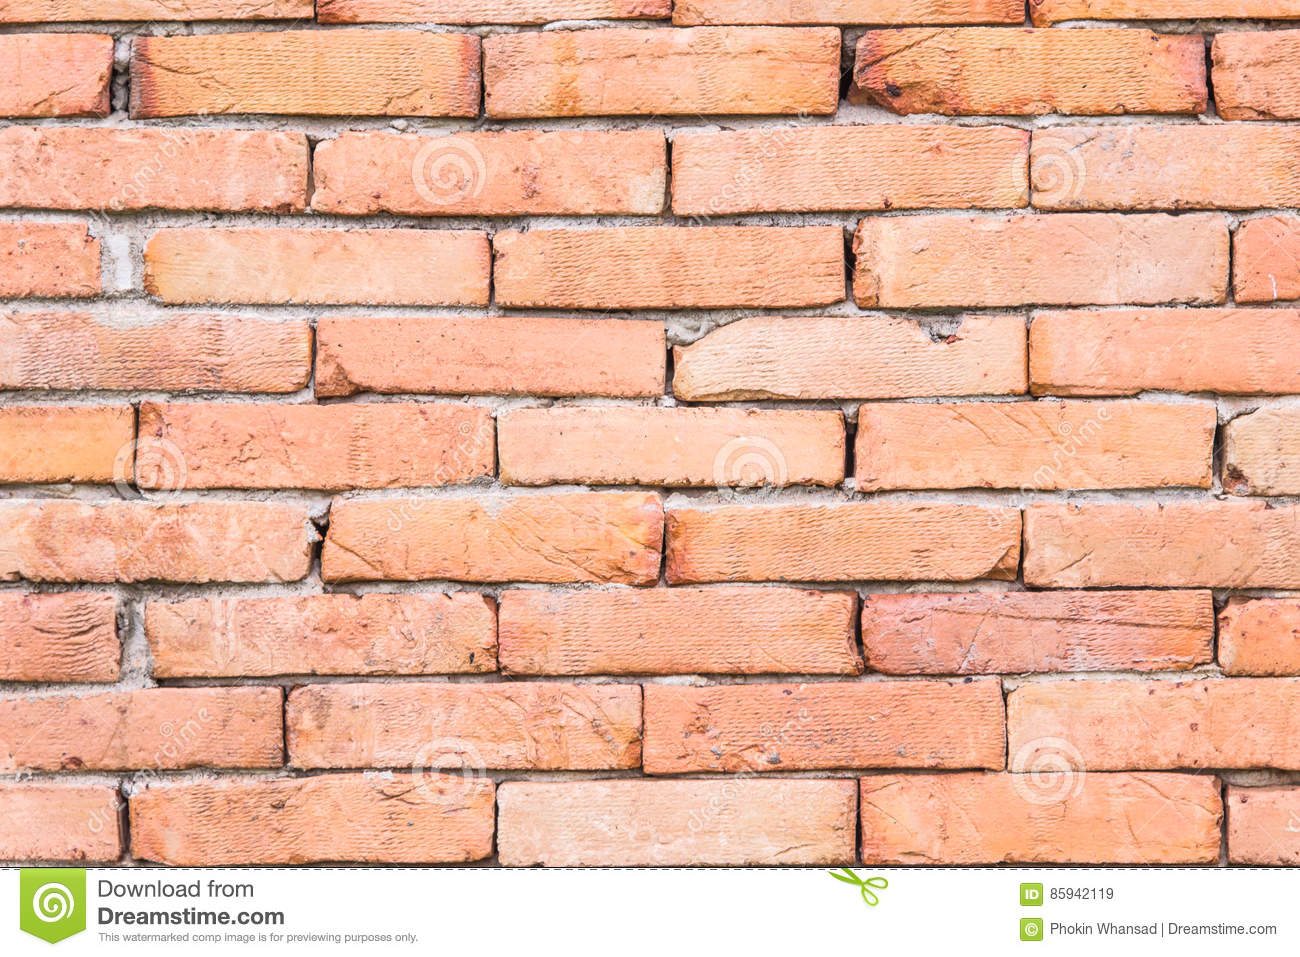 Black and white brick wall texture background royalty for Cleaning concrete walls